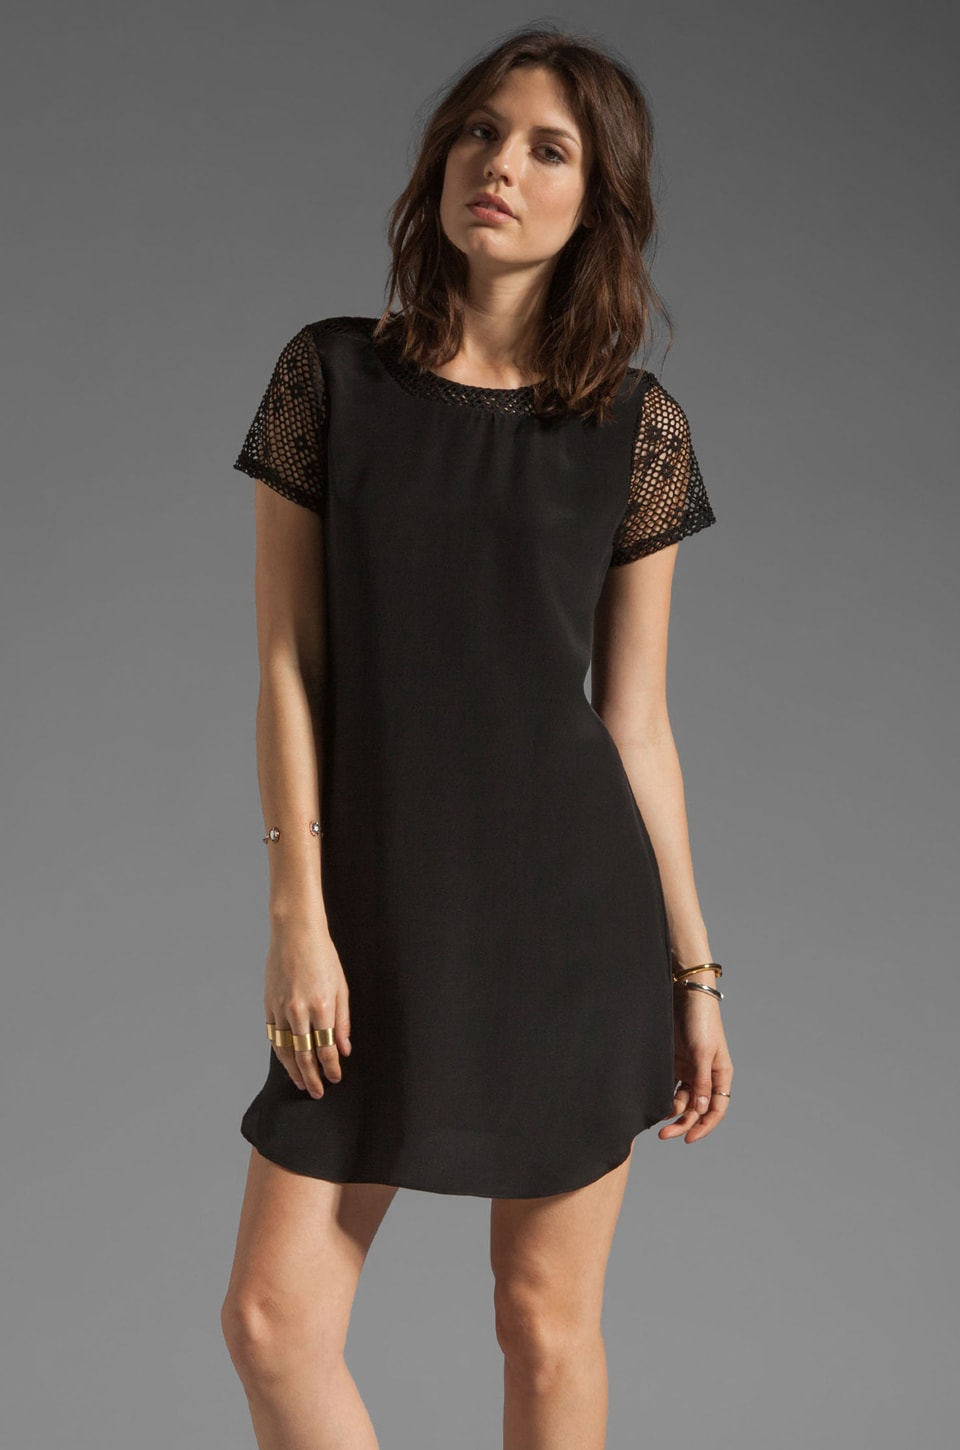 Rory Beca Domaine Perforated Tee Dress in Black